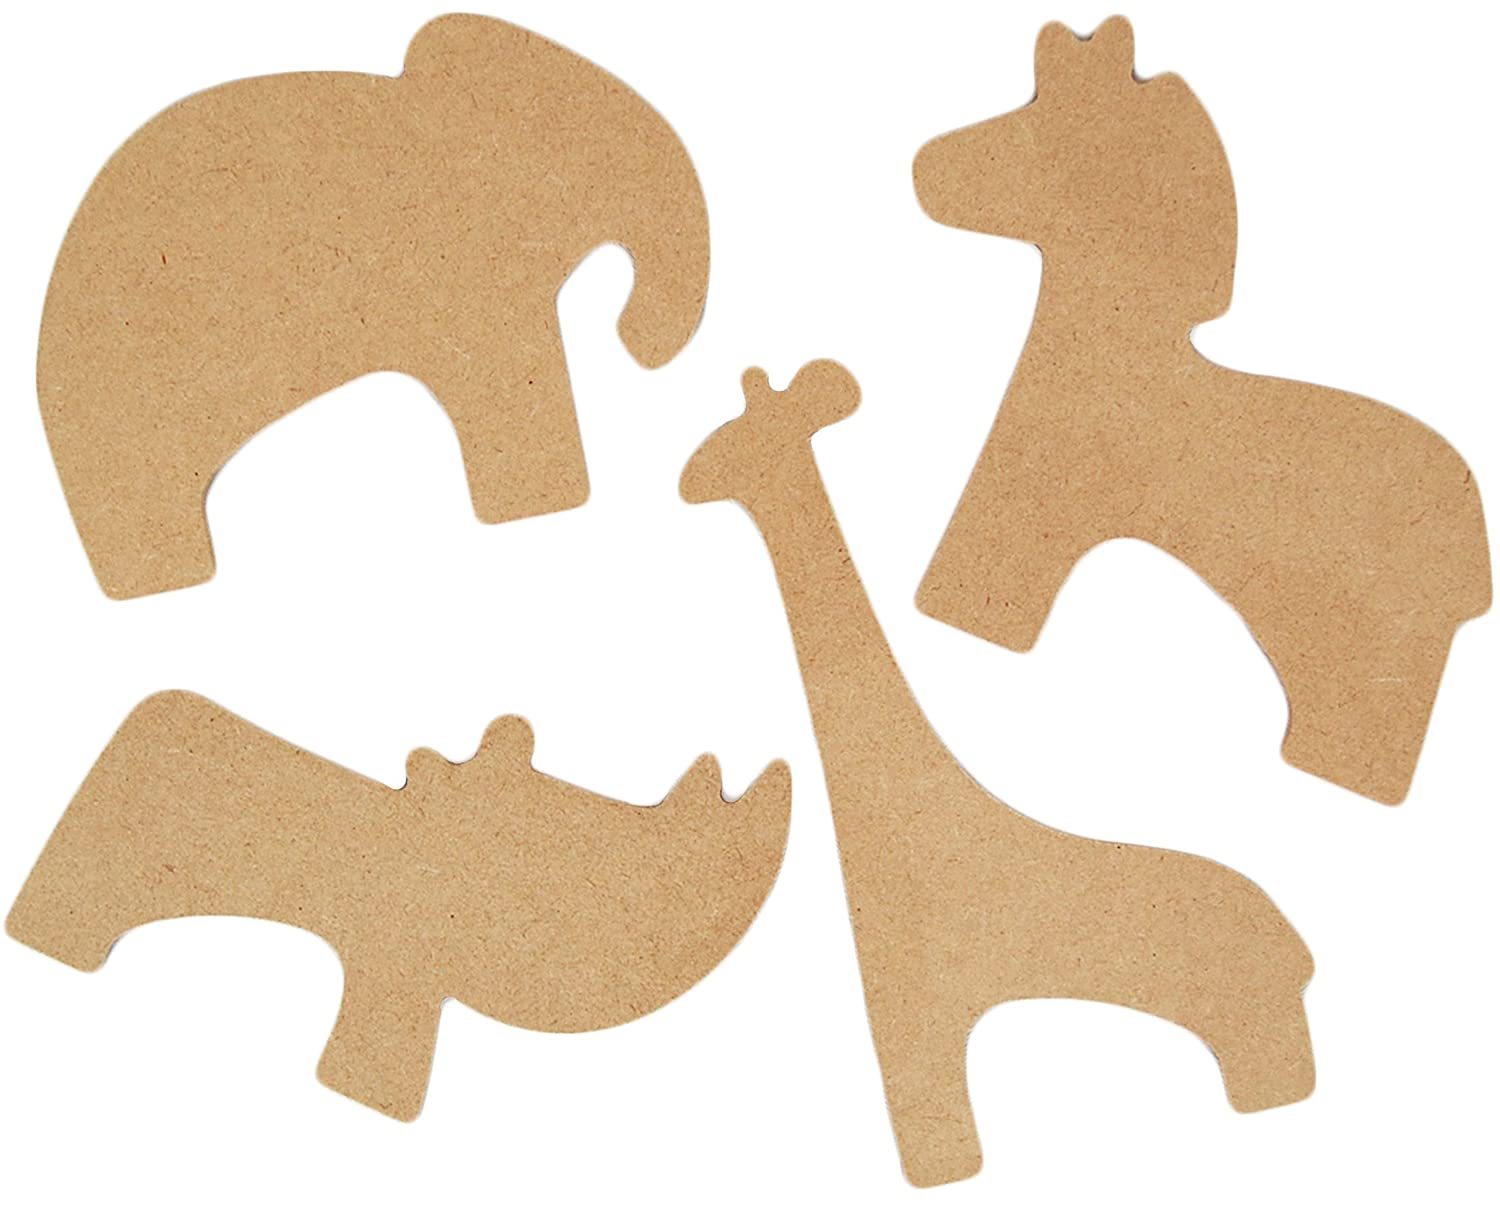 Country Love Crafts 4 Zoo Themed Wooden Craft Blanks, Light Brown CLW0019